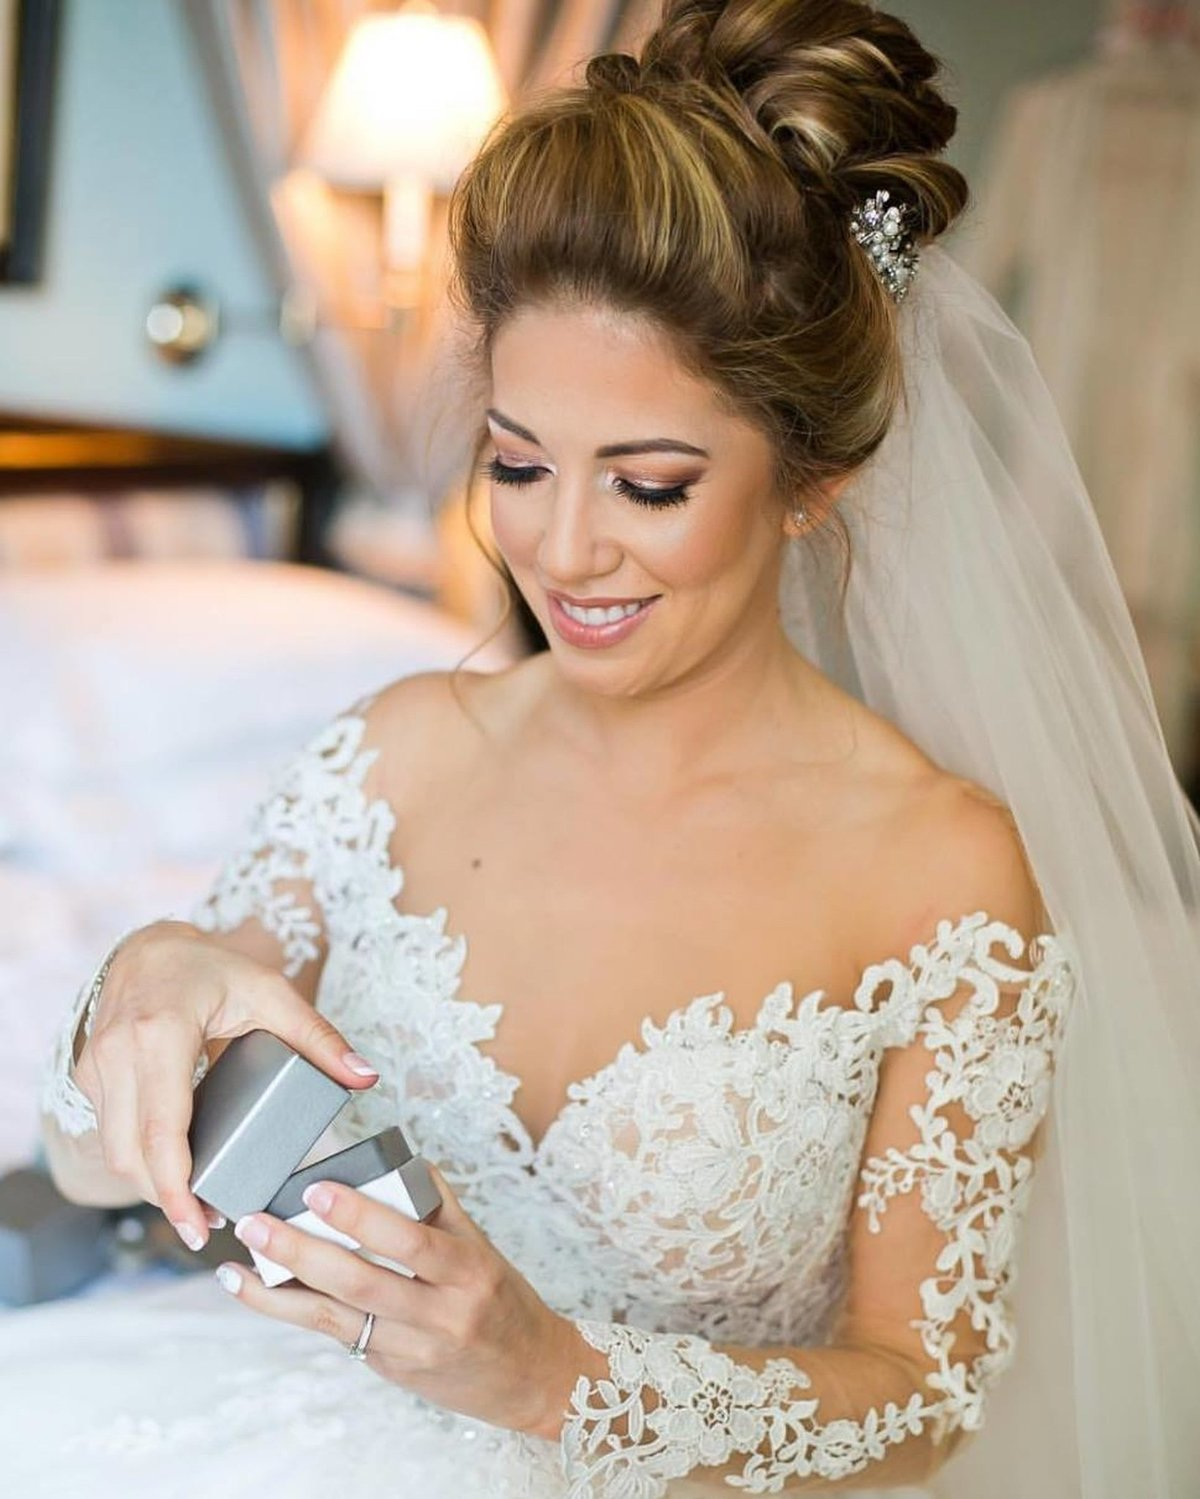 Hannah-Elisabeth-Beauty-Bridal-Makeup-2